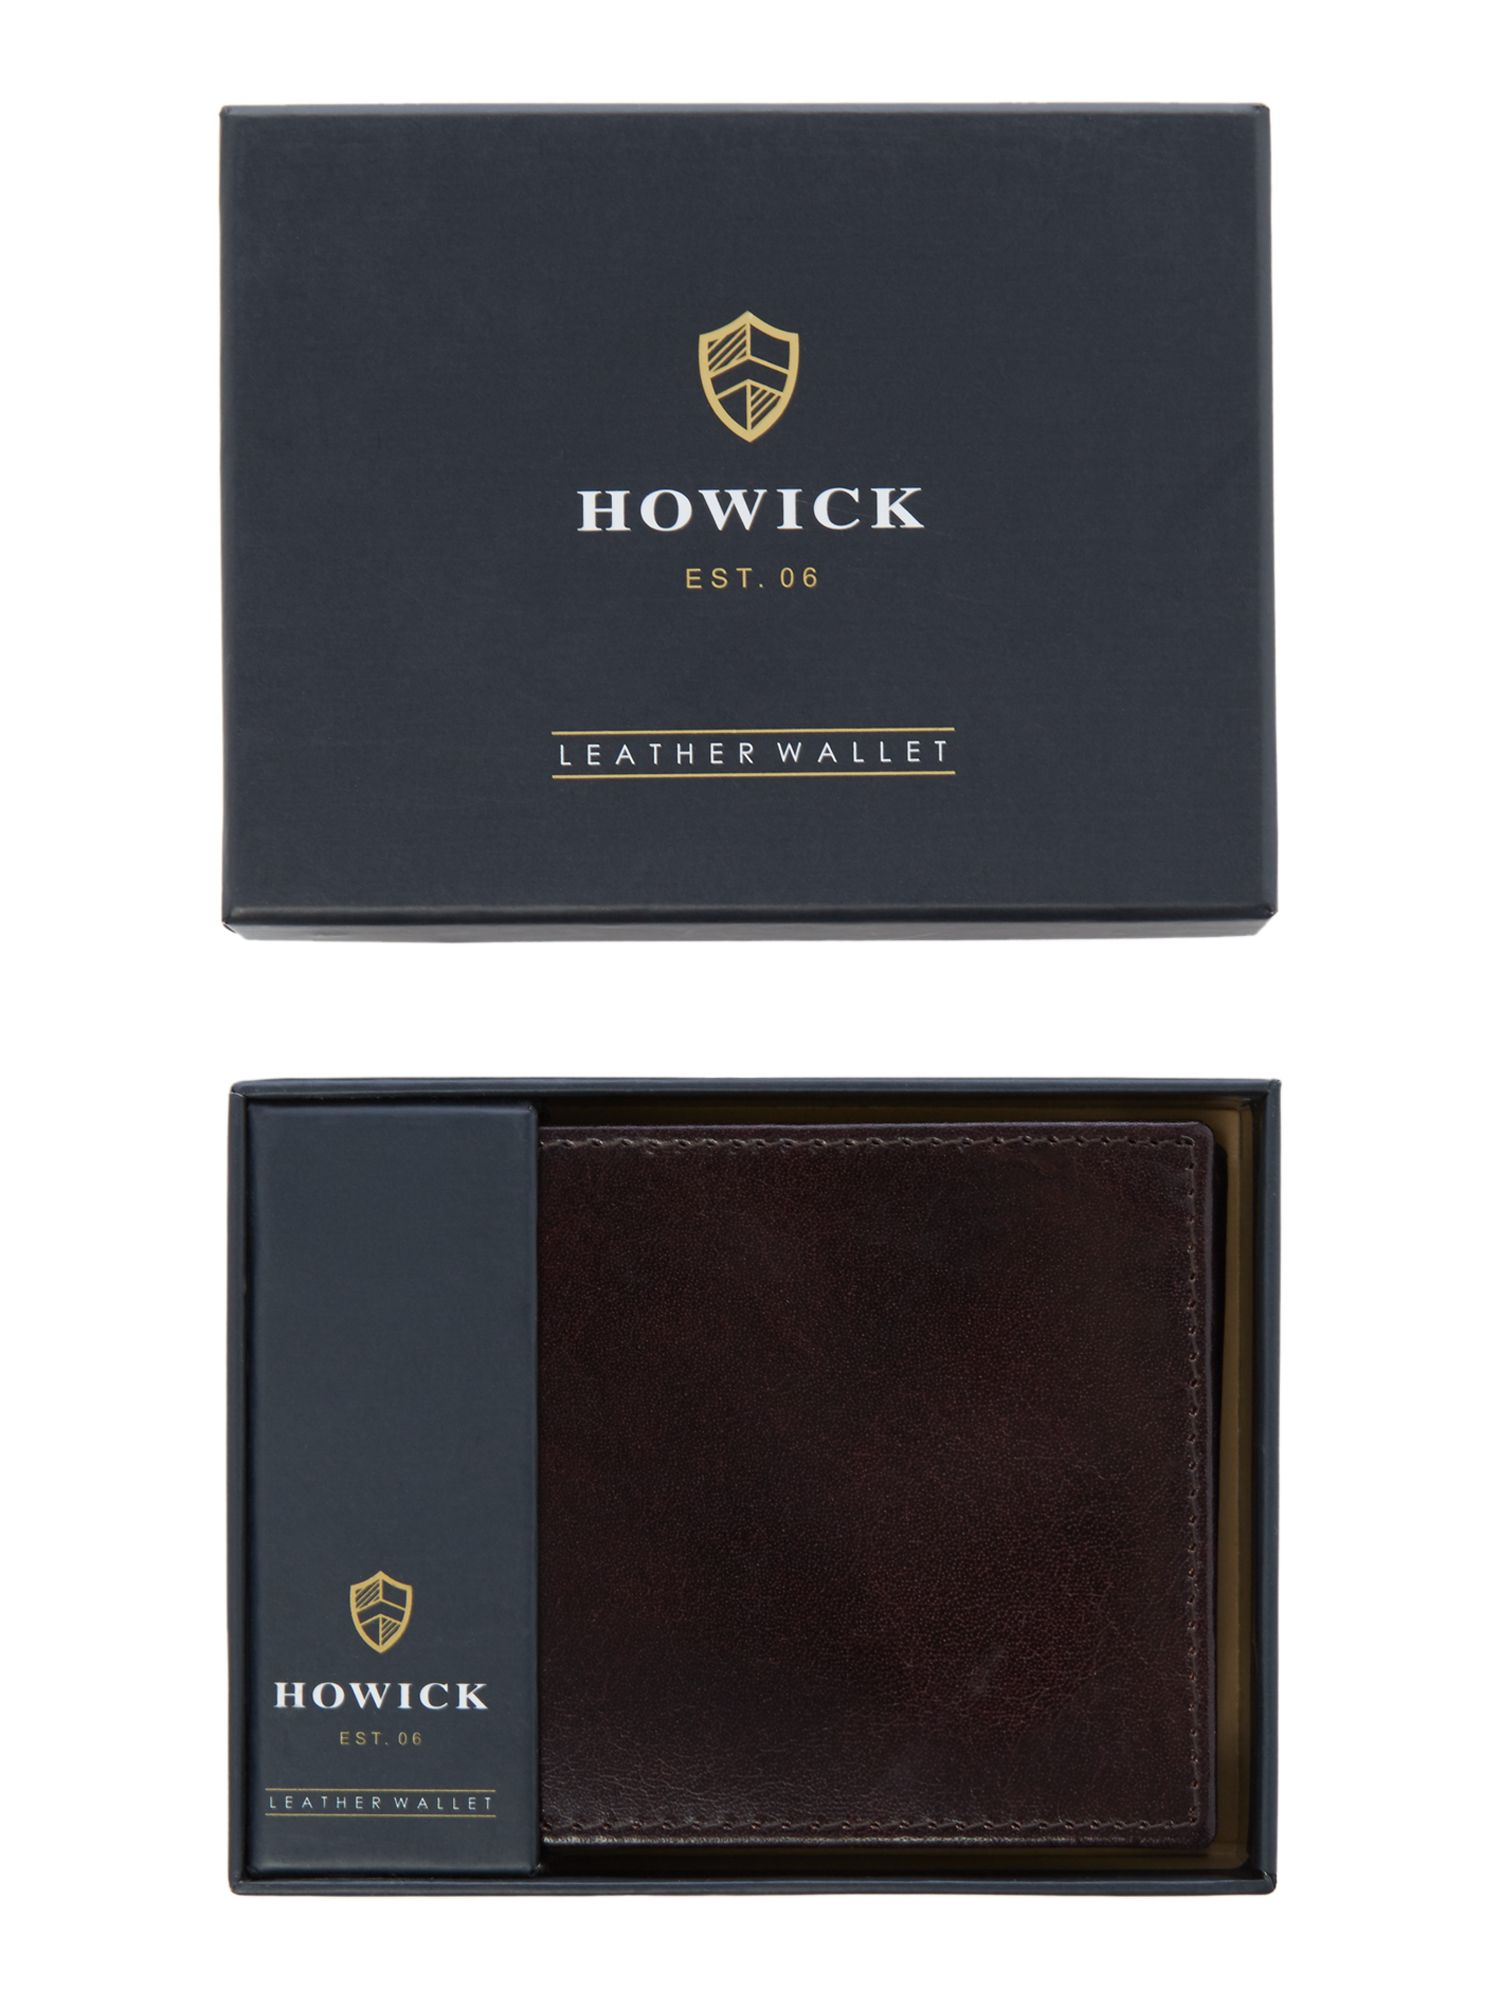 Howick Leather Wallet, Brown